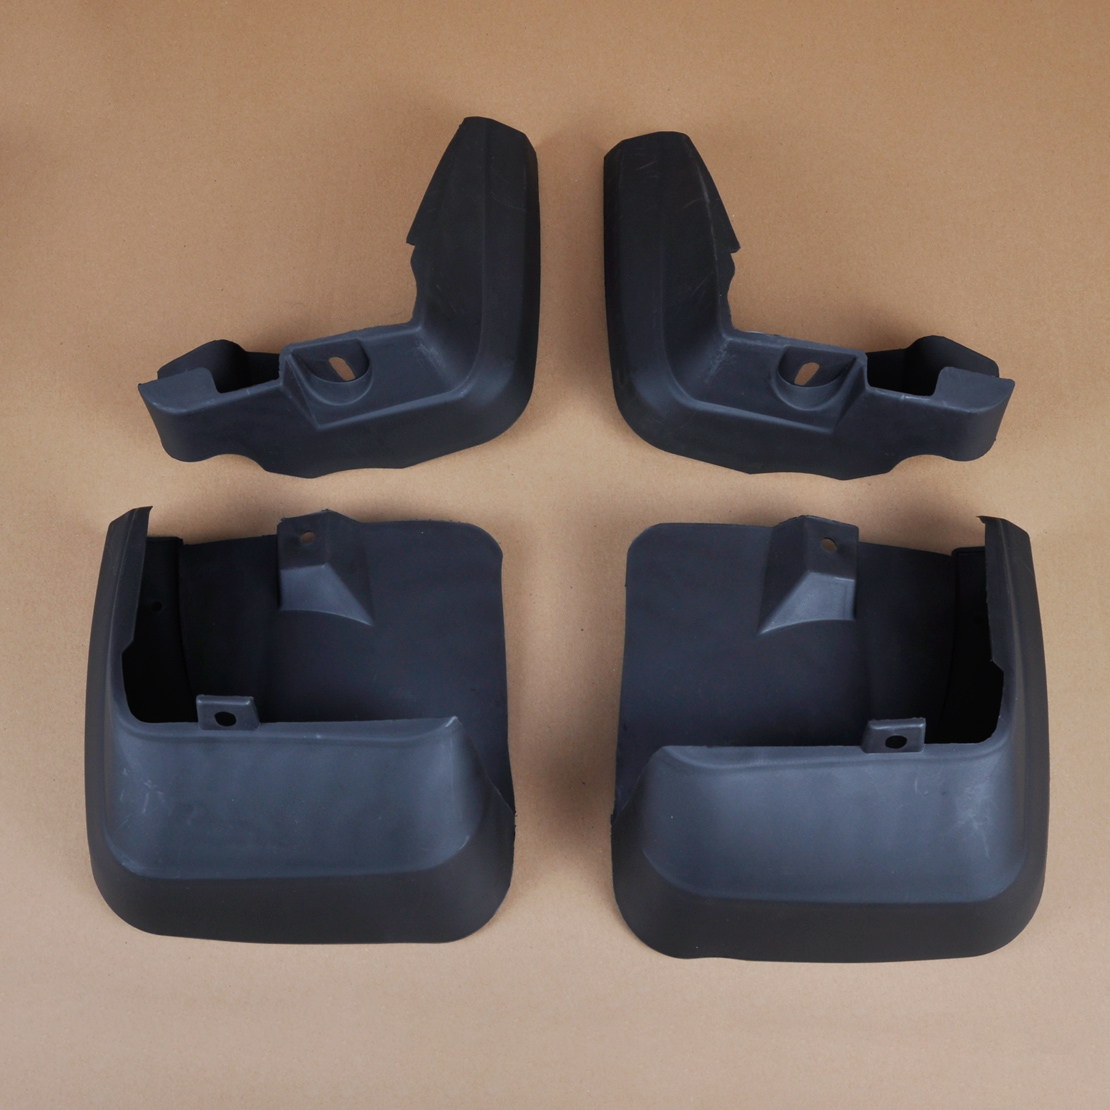 New Mud Flaps Flap Splash Guards Mudguard For Subaru Xv